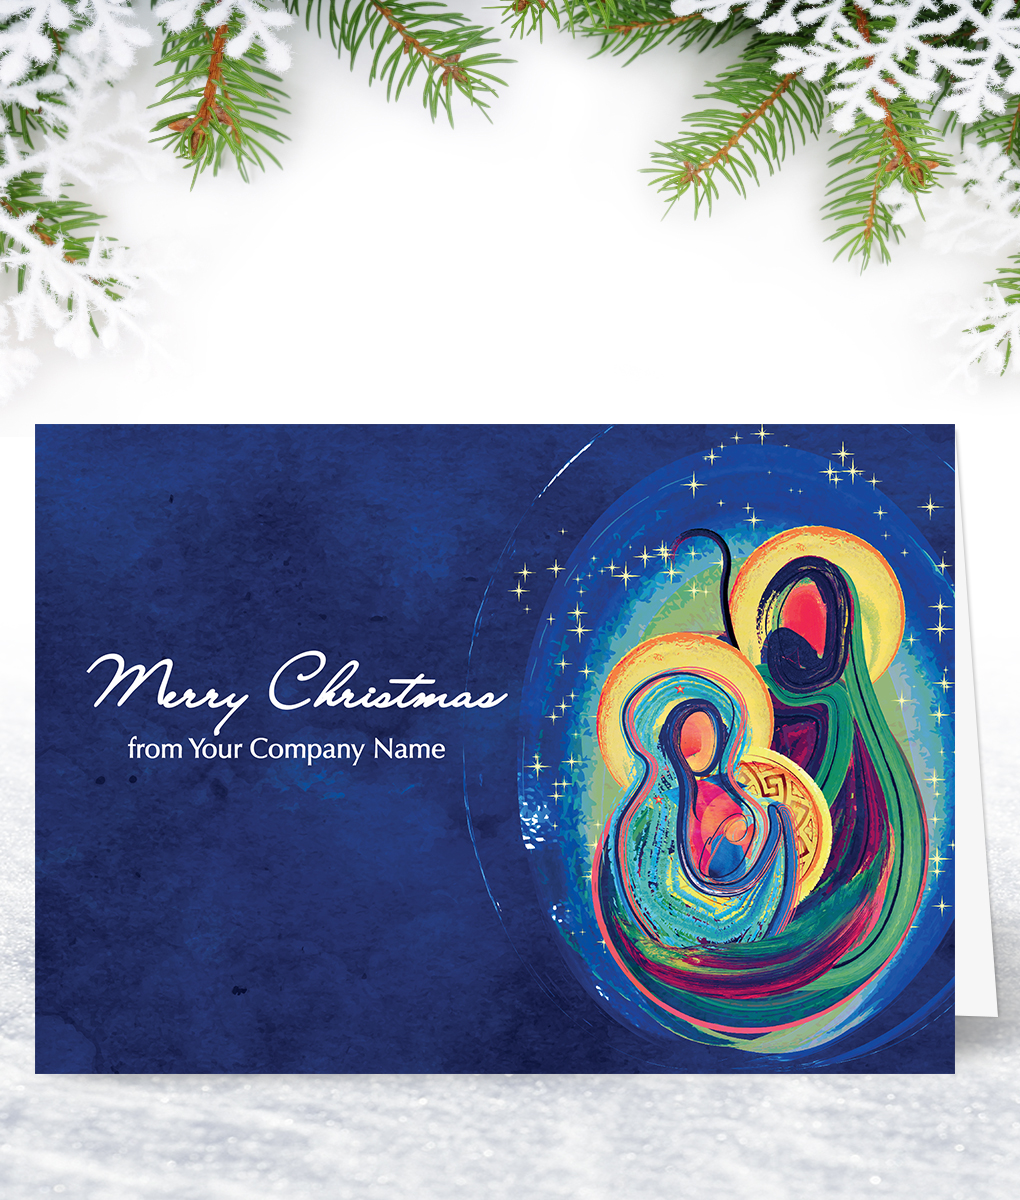 Religious Christmas Cards.The Birth Christmas Card Corporate Collection